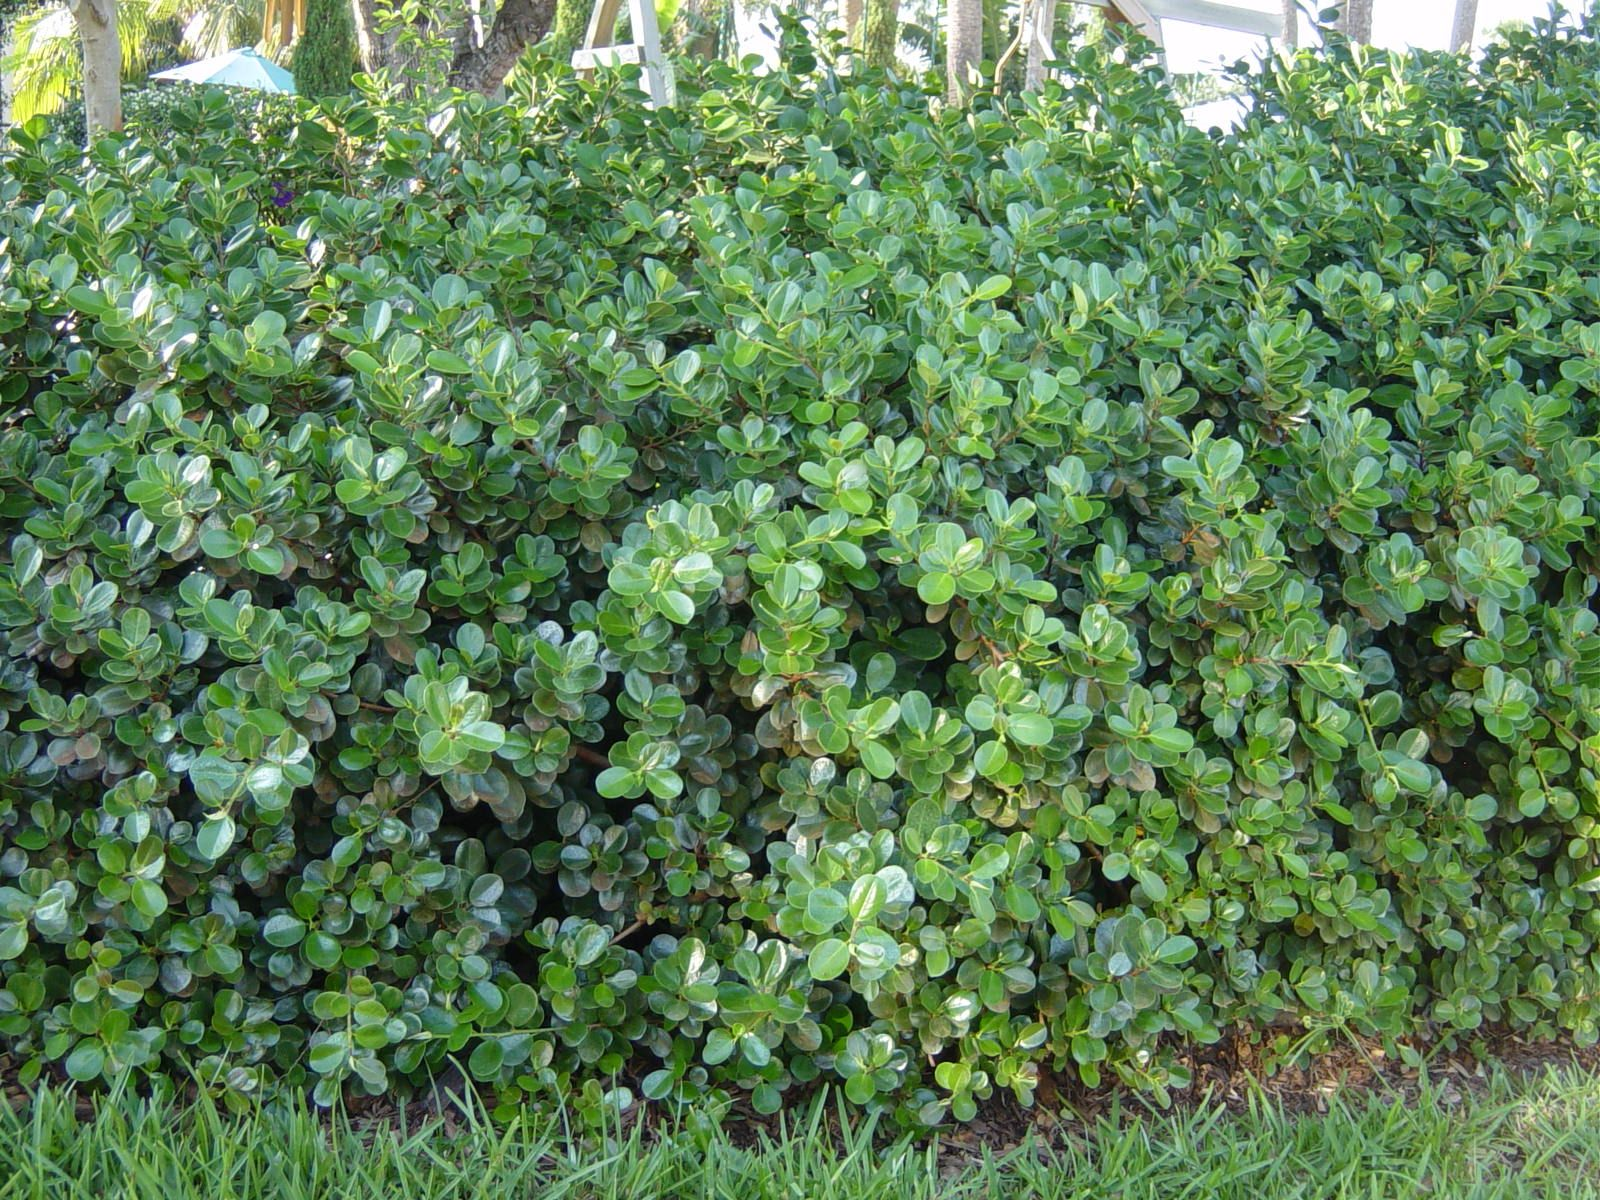 Ficus Microcarpa Green Island Ficus Has Become The Most Popular Plant Of The Past Couple Decades It Is Plants Florida Landscaping Drought Tolerant Landscape